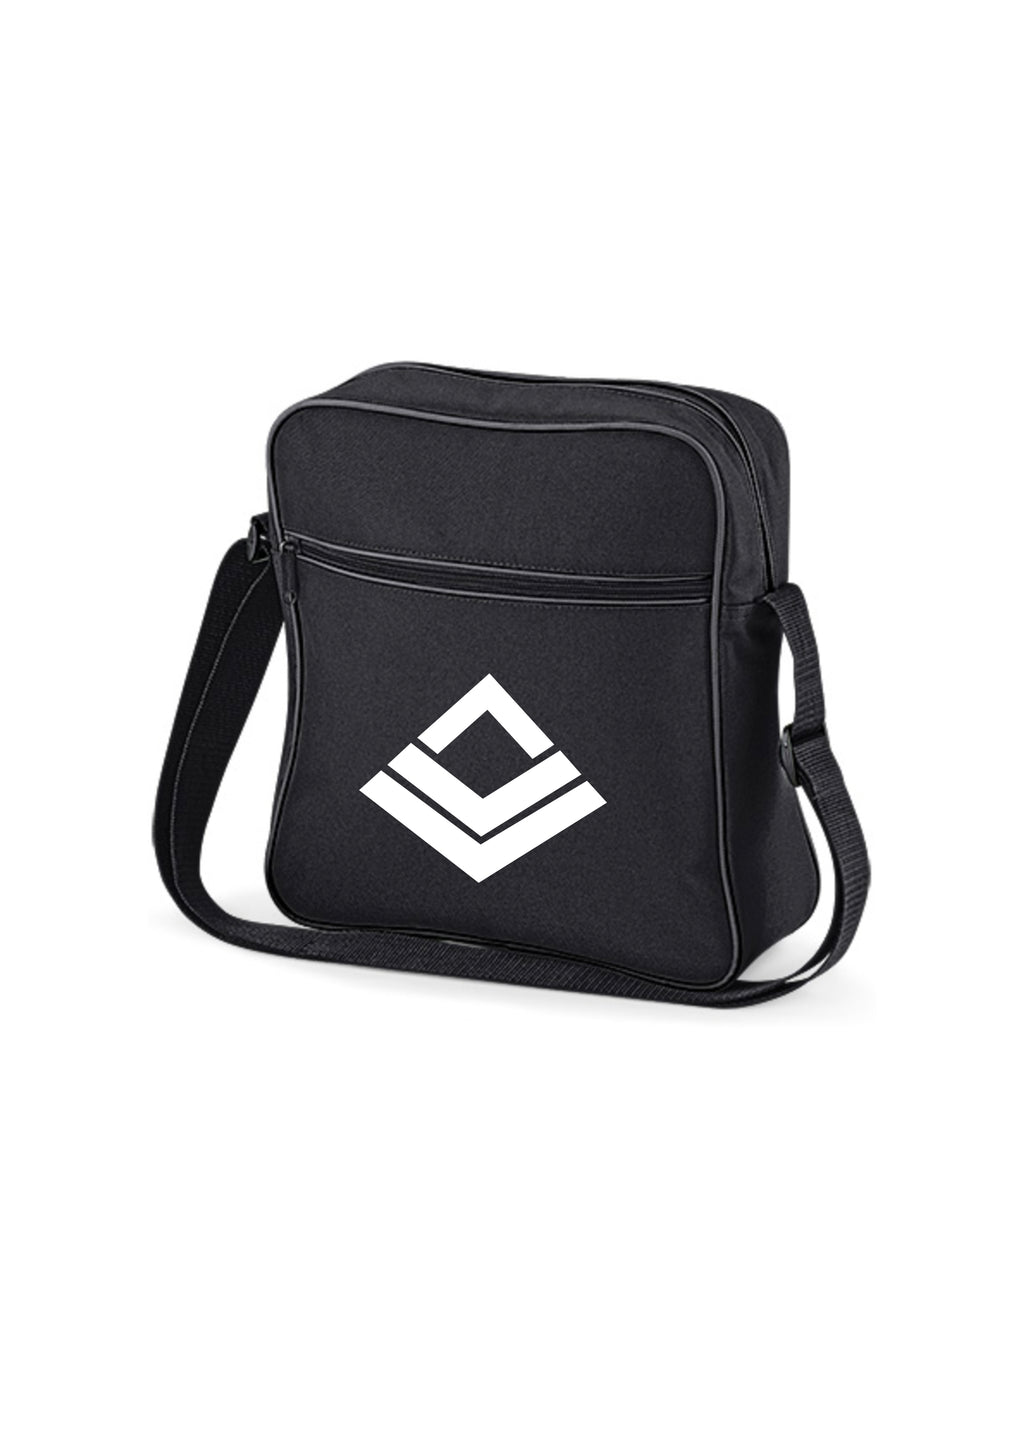 Swaggerlicious Active Black and Graphite Flight Bag - swaggerlicious-clothing.com